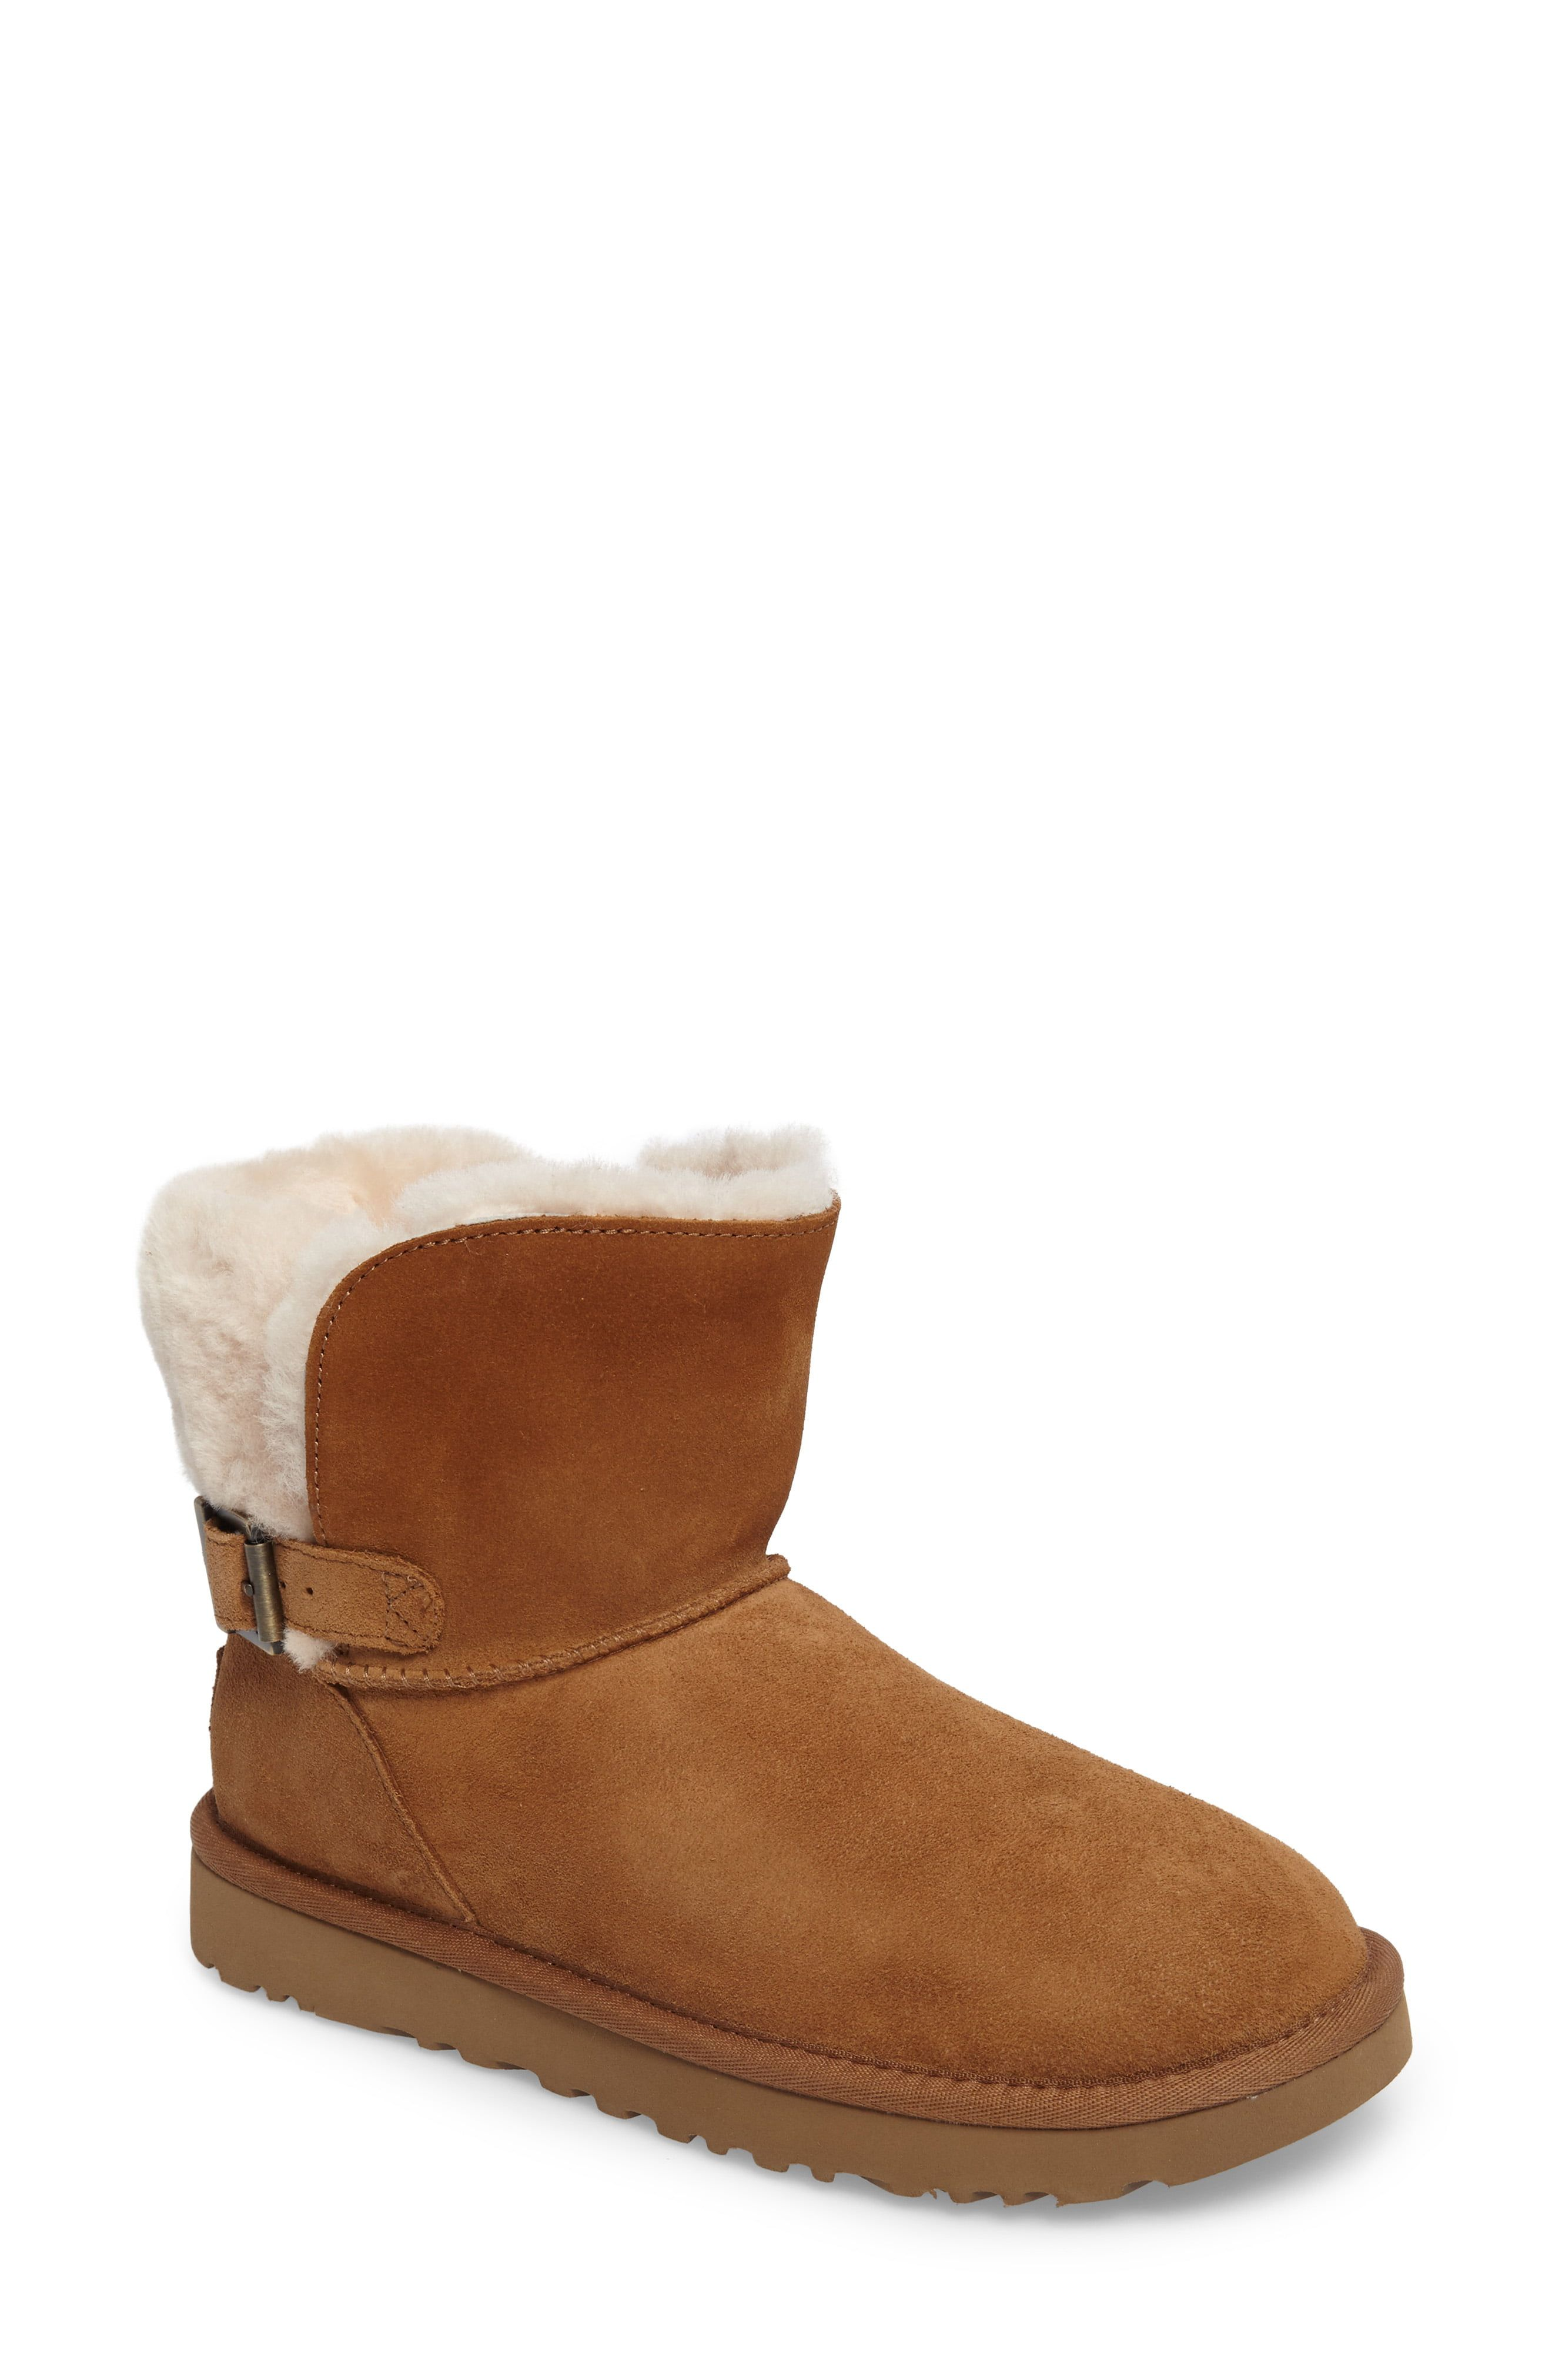 where can i find ugg boots in stores